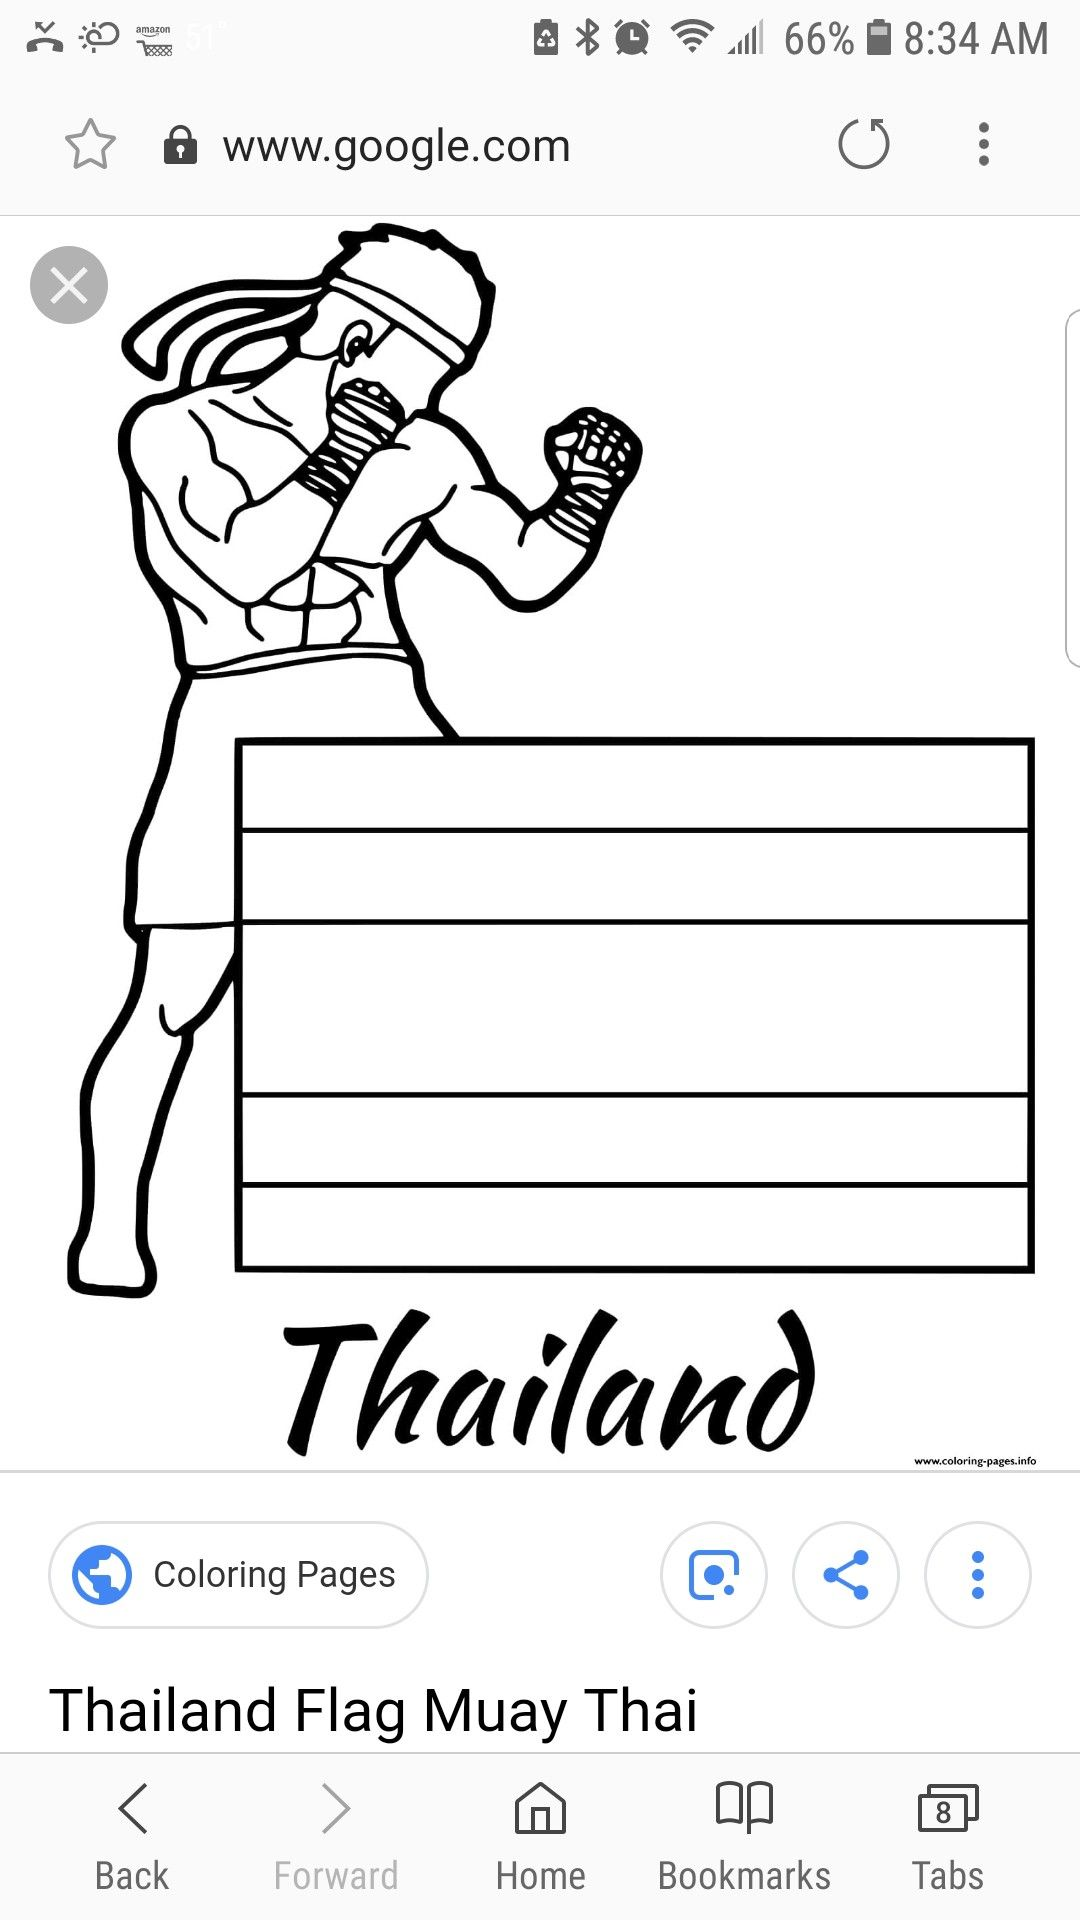 Pin By Cindy Corrigan Goben On Thailand Thailand Flag Muay Thai